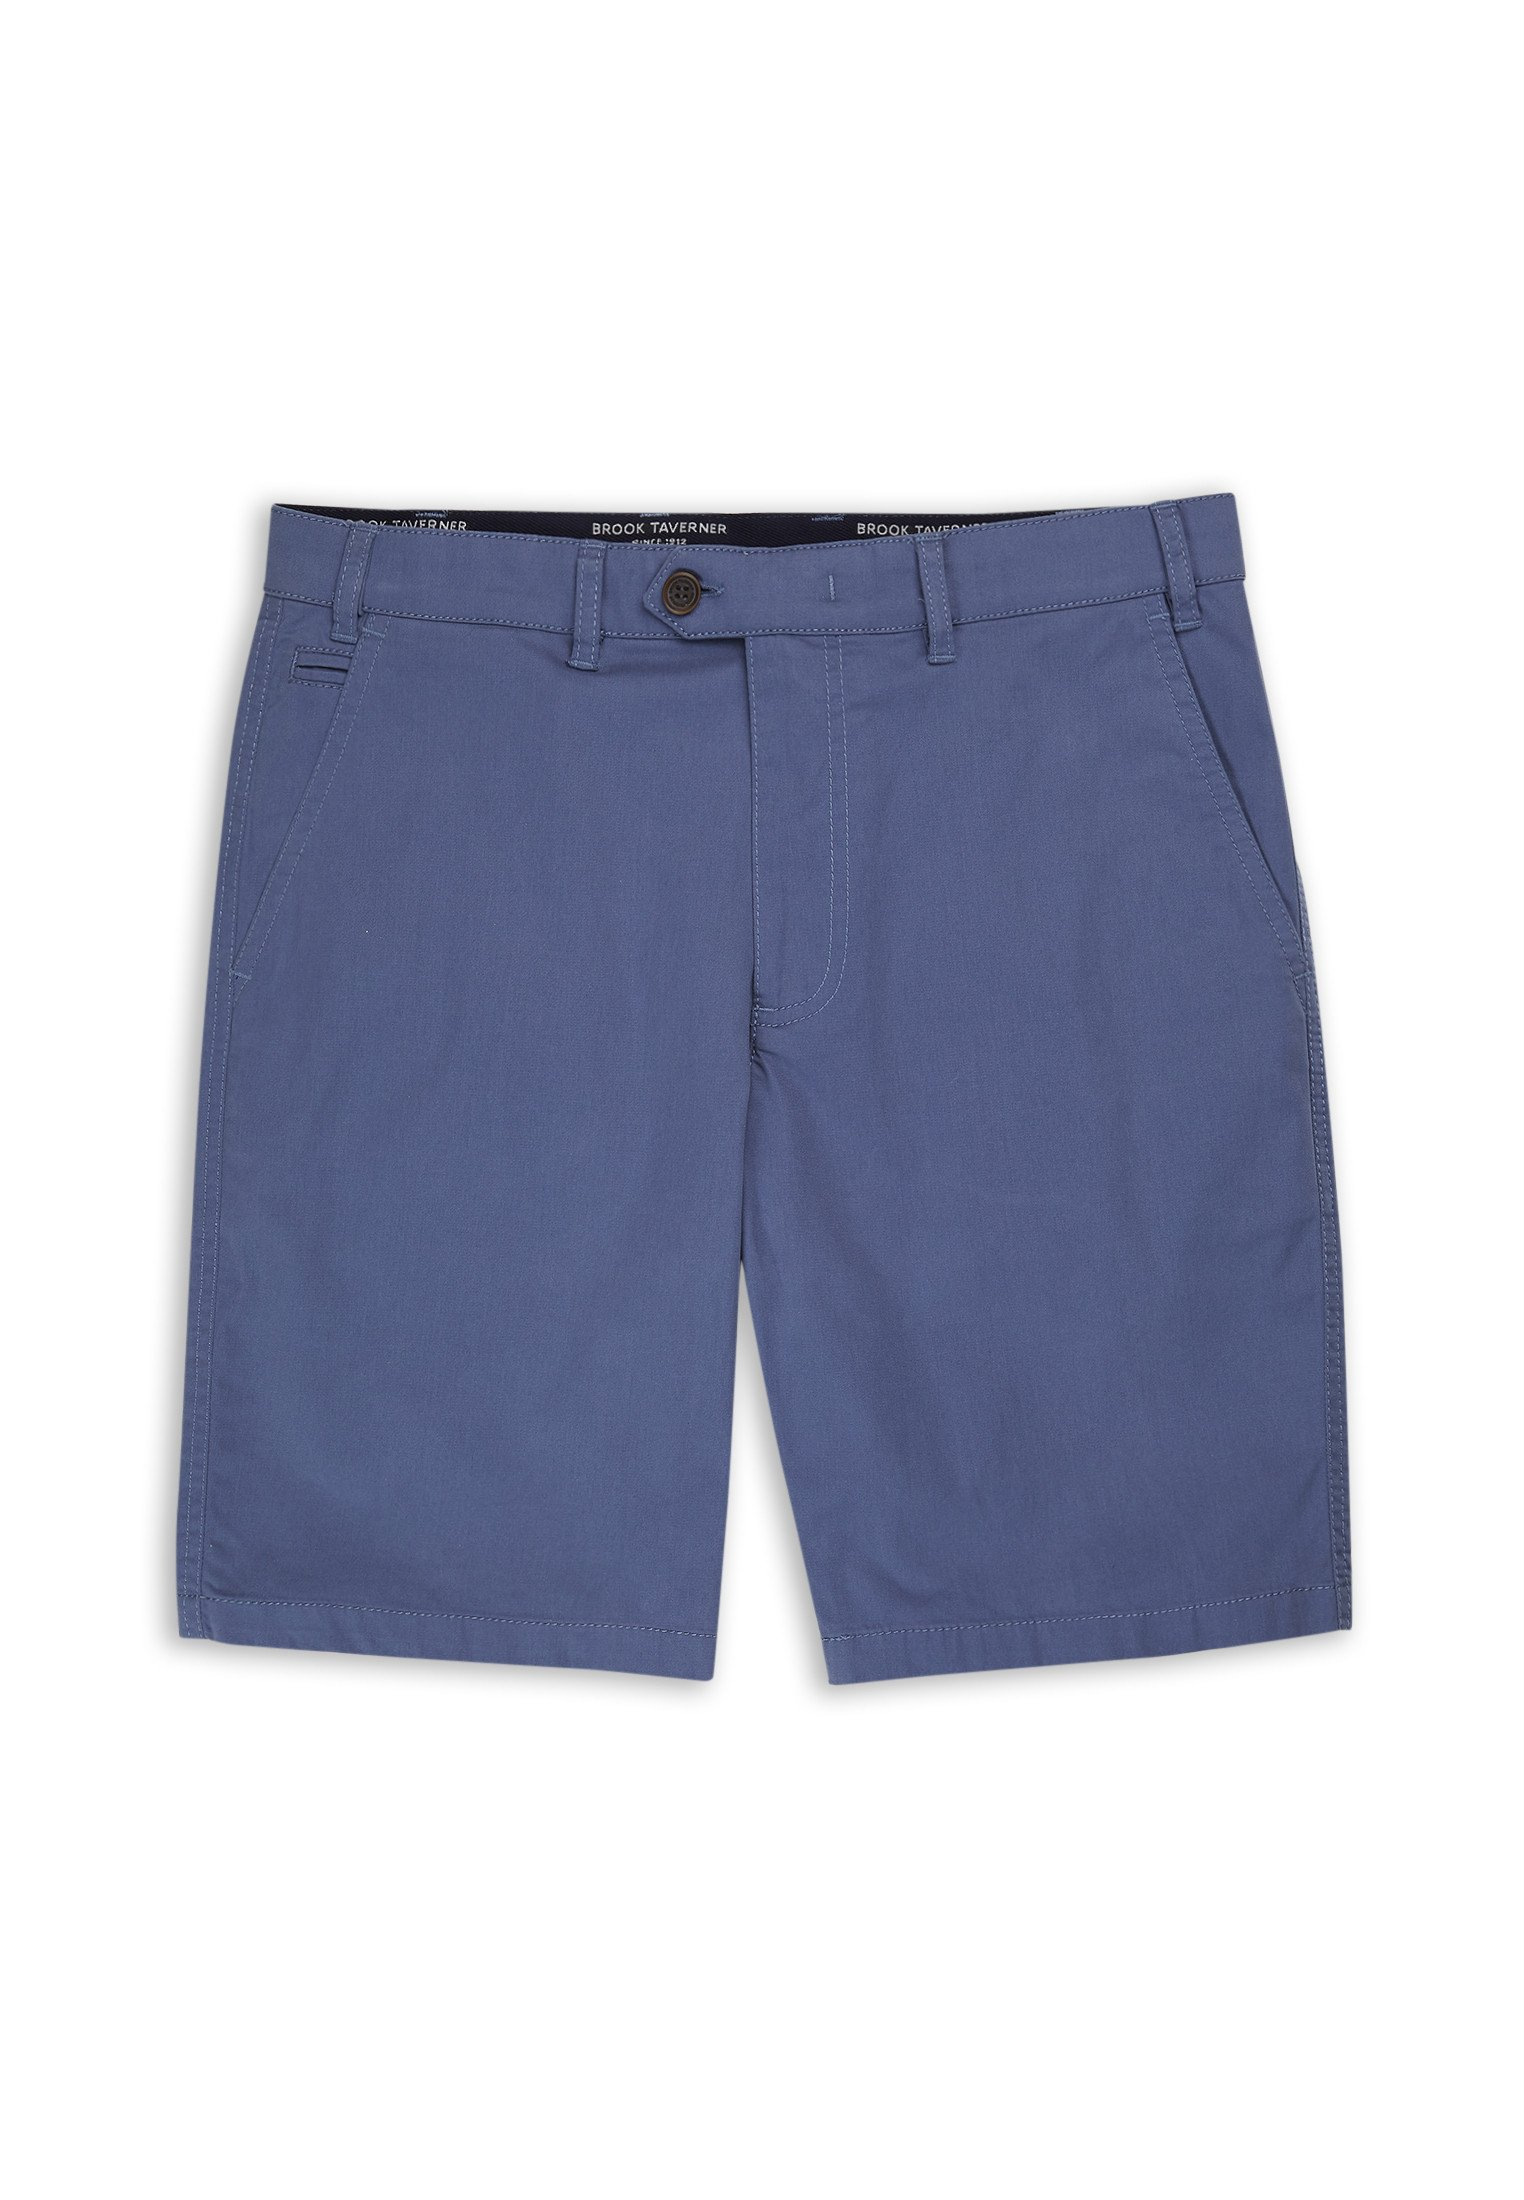 Brook Taverner Sea Blue Ashdown Chino Shorts